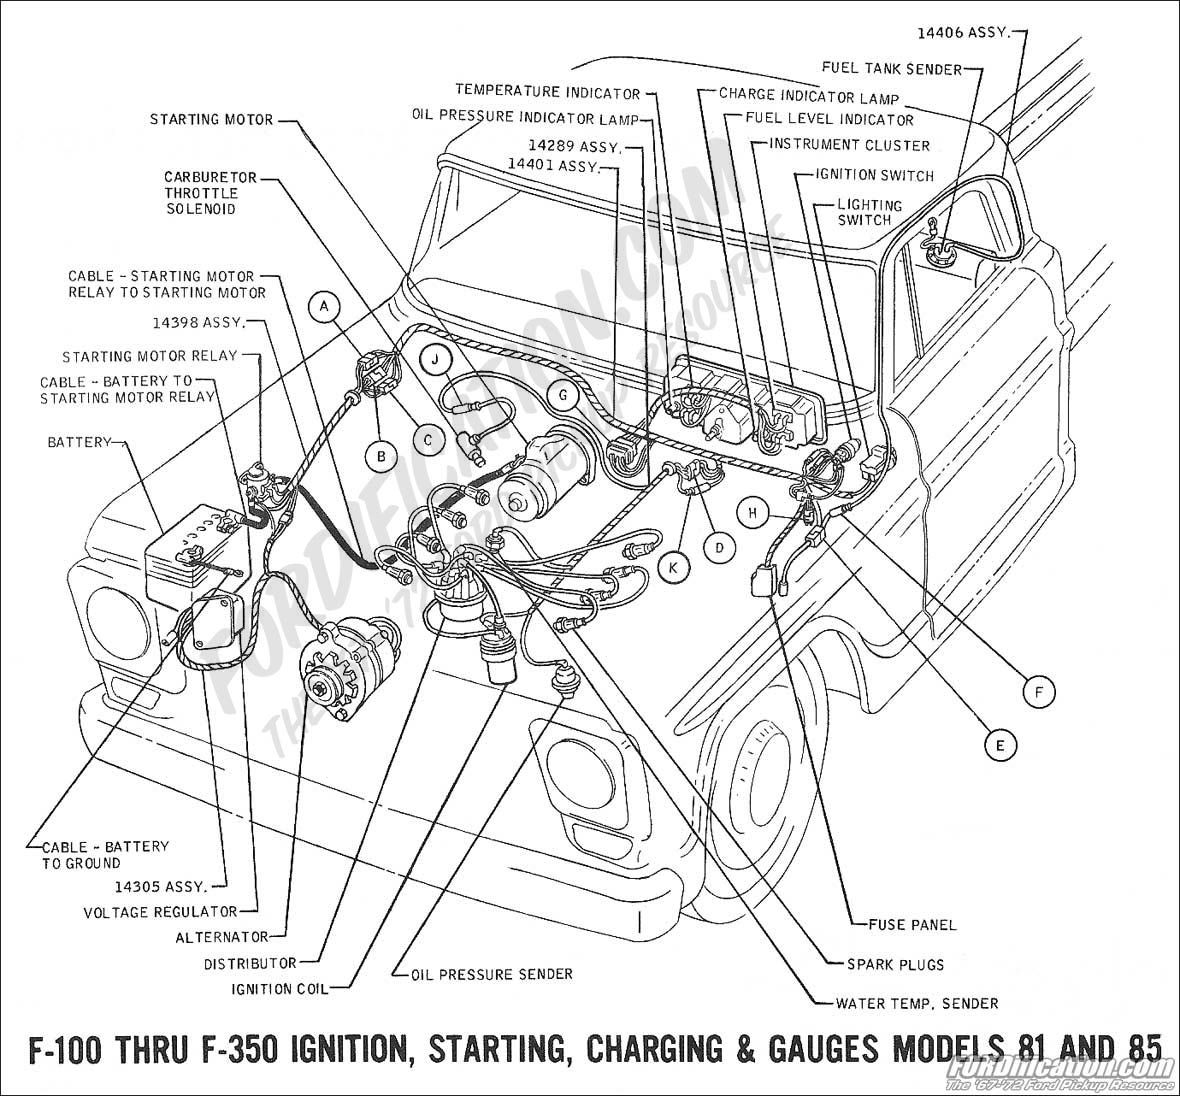 Pin About F100 On Ford Truck